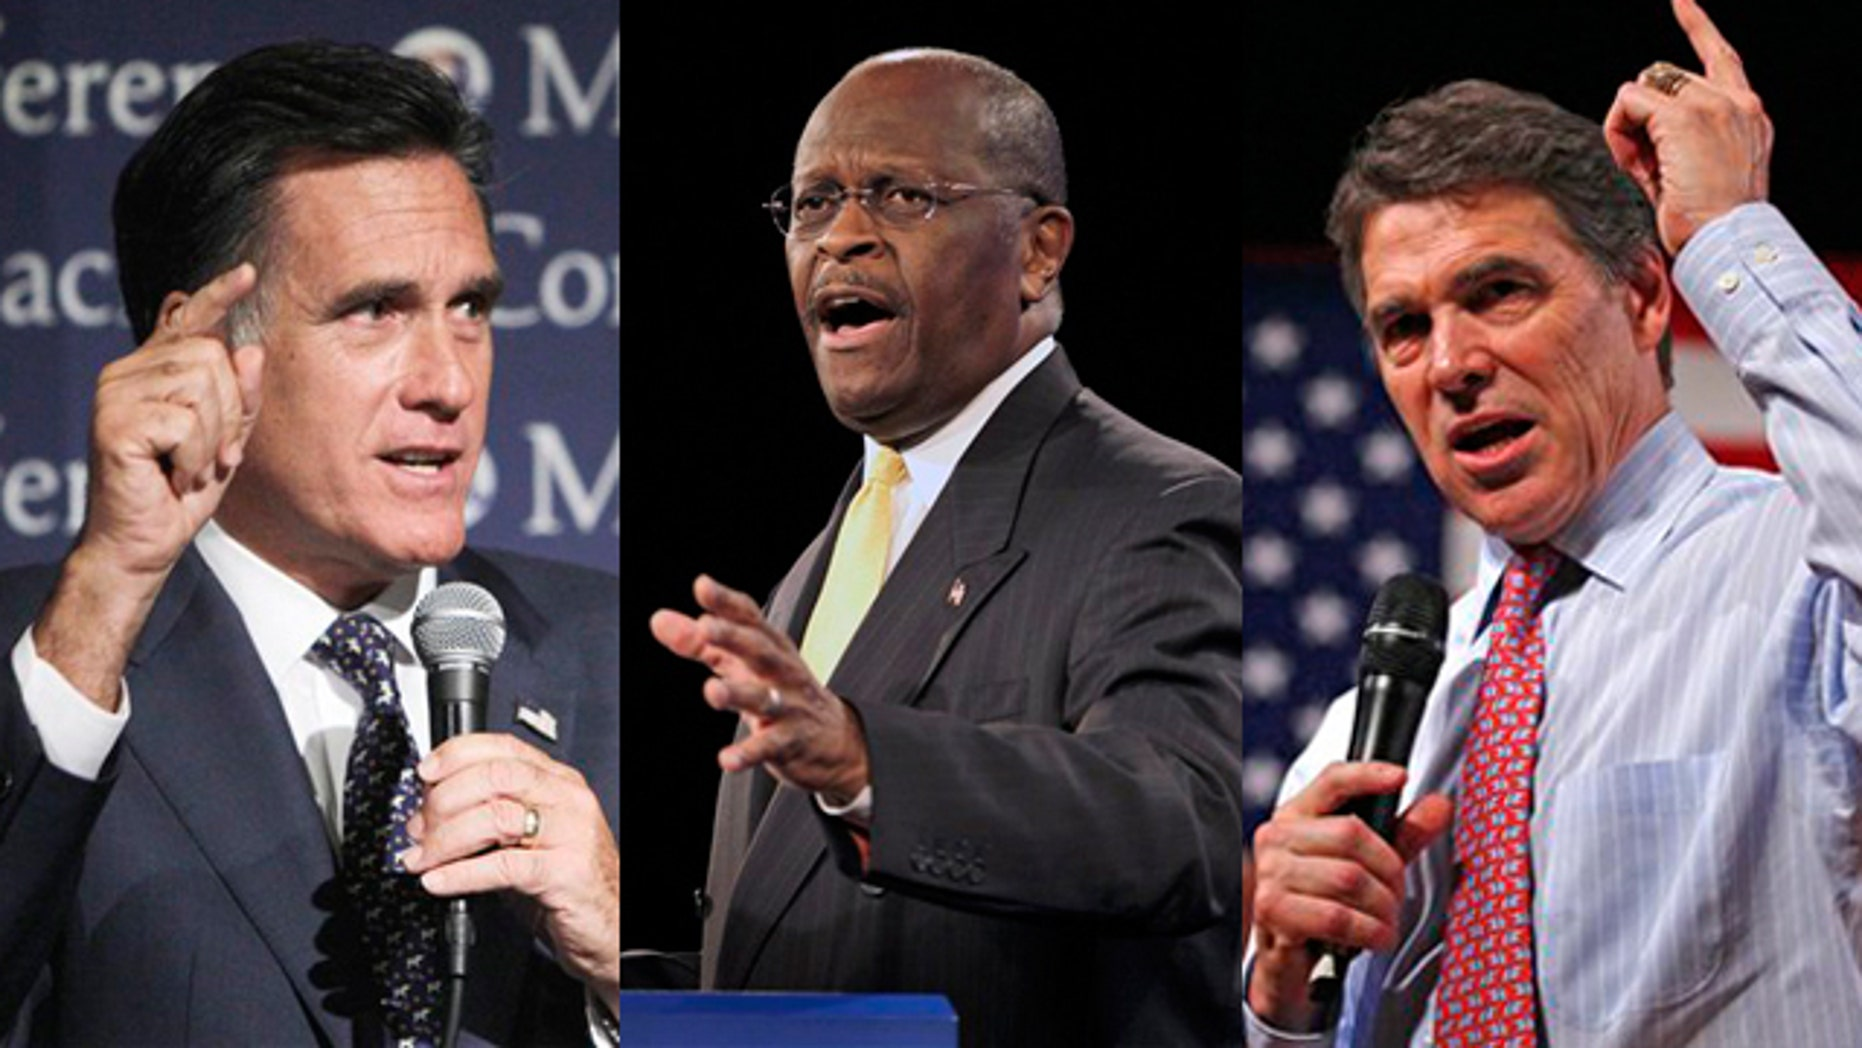 Shown here are former Massachusetts Gov. Mitt Romney, left, businessman Herman Cain, center, and Texas Gov. Rick Perry.